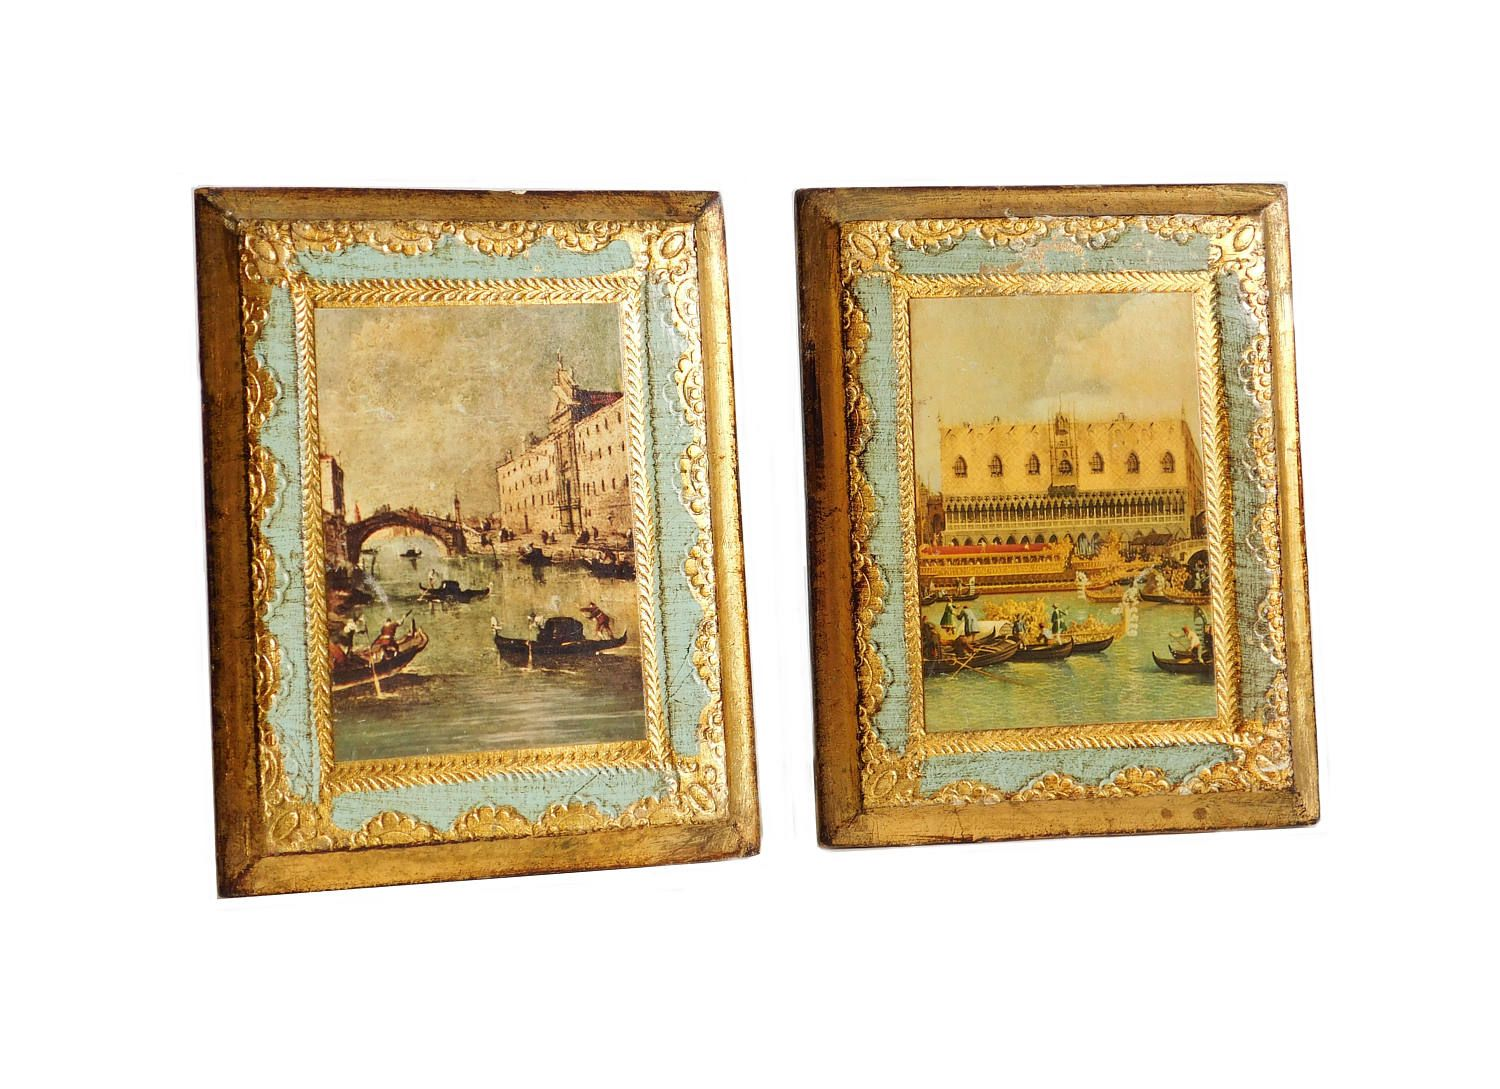 Vintage Florentine Wall Art, Made in Italy, Mini Wall Plaques ...